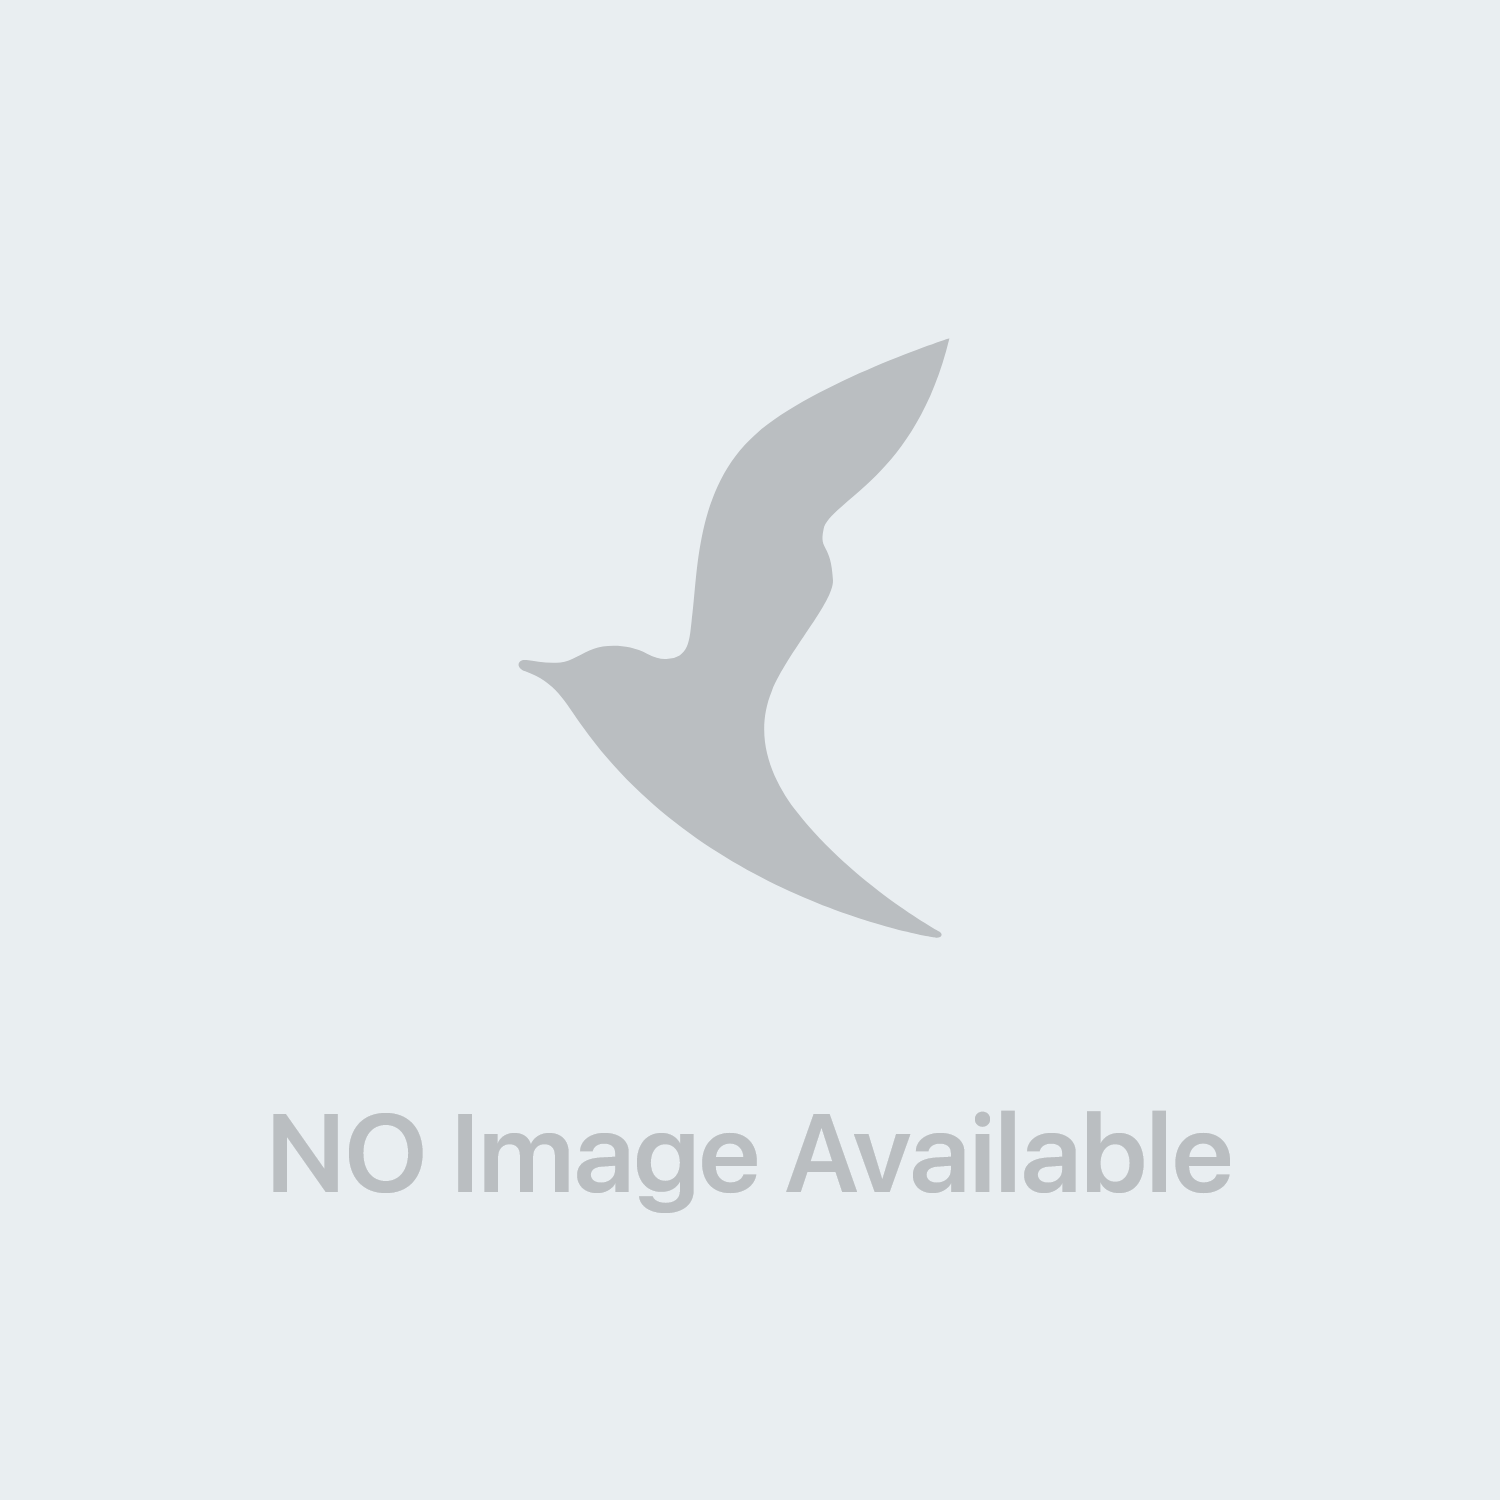 Audispray Junior Igiene Dell'Orecchio 25 ml